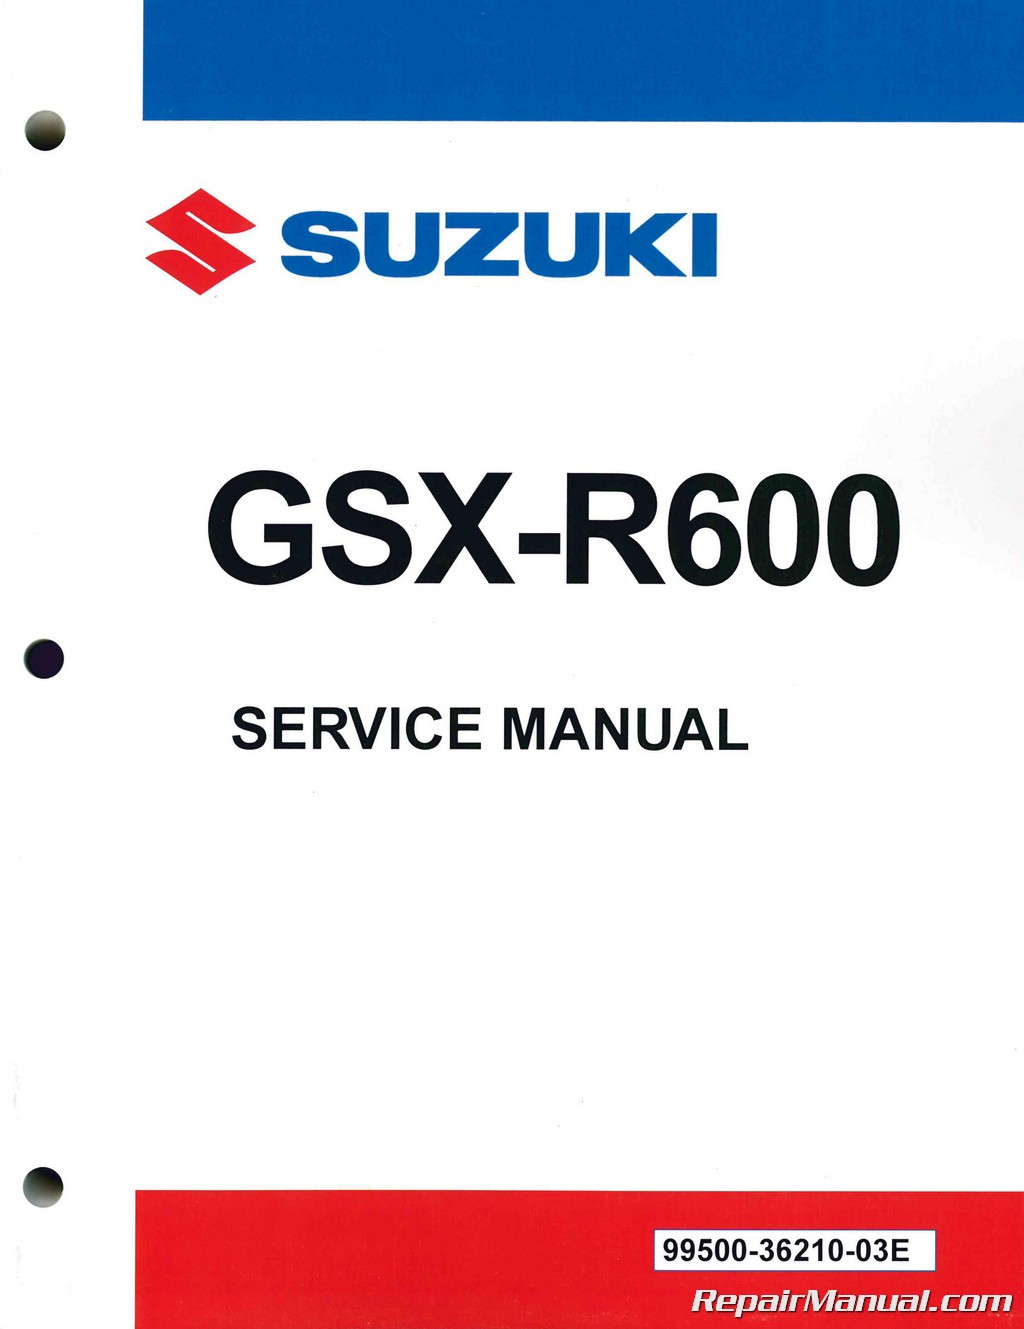 Suzuki gsxr600 1997 1998 1999 2000 workshop service repair manual p.